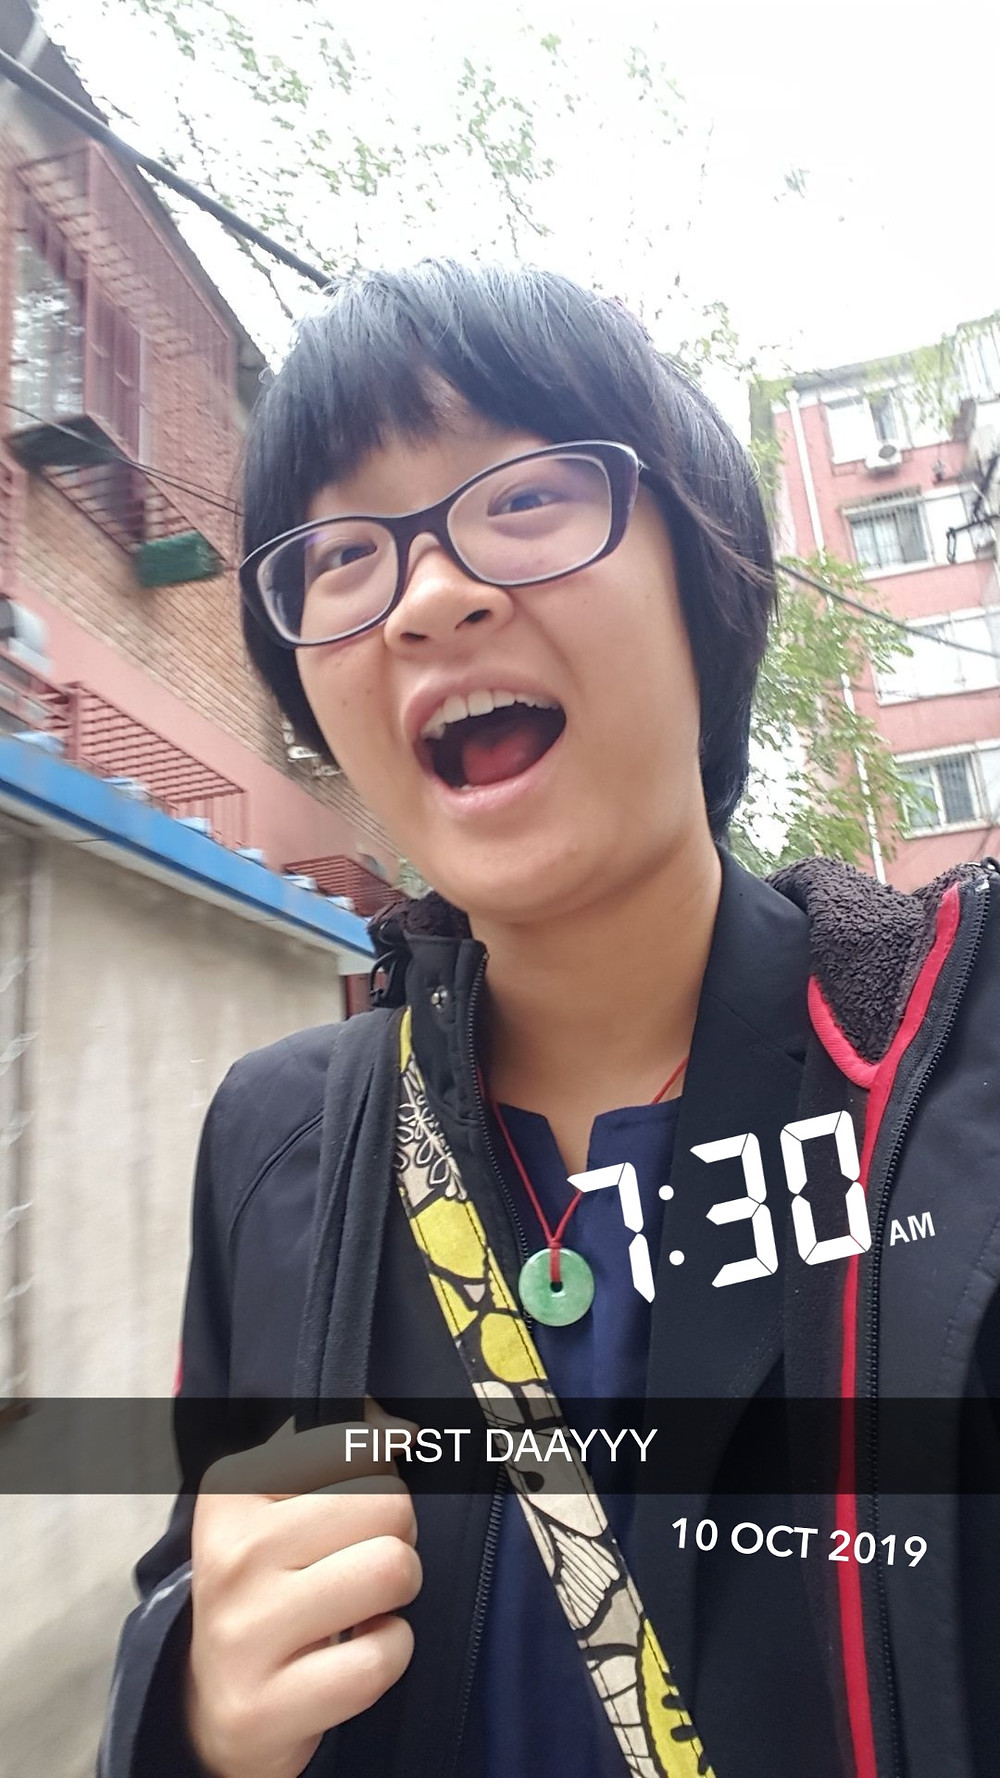 """Vicky excited for her first day at her internship. Caption is """"FIRST DAAYYY"""", with a 7:30am timestamp."""